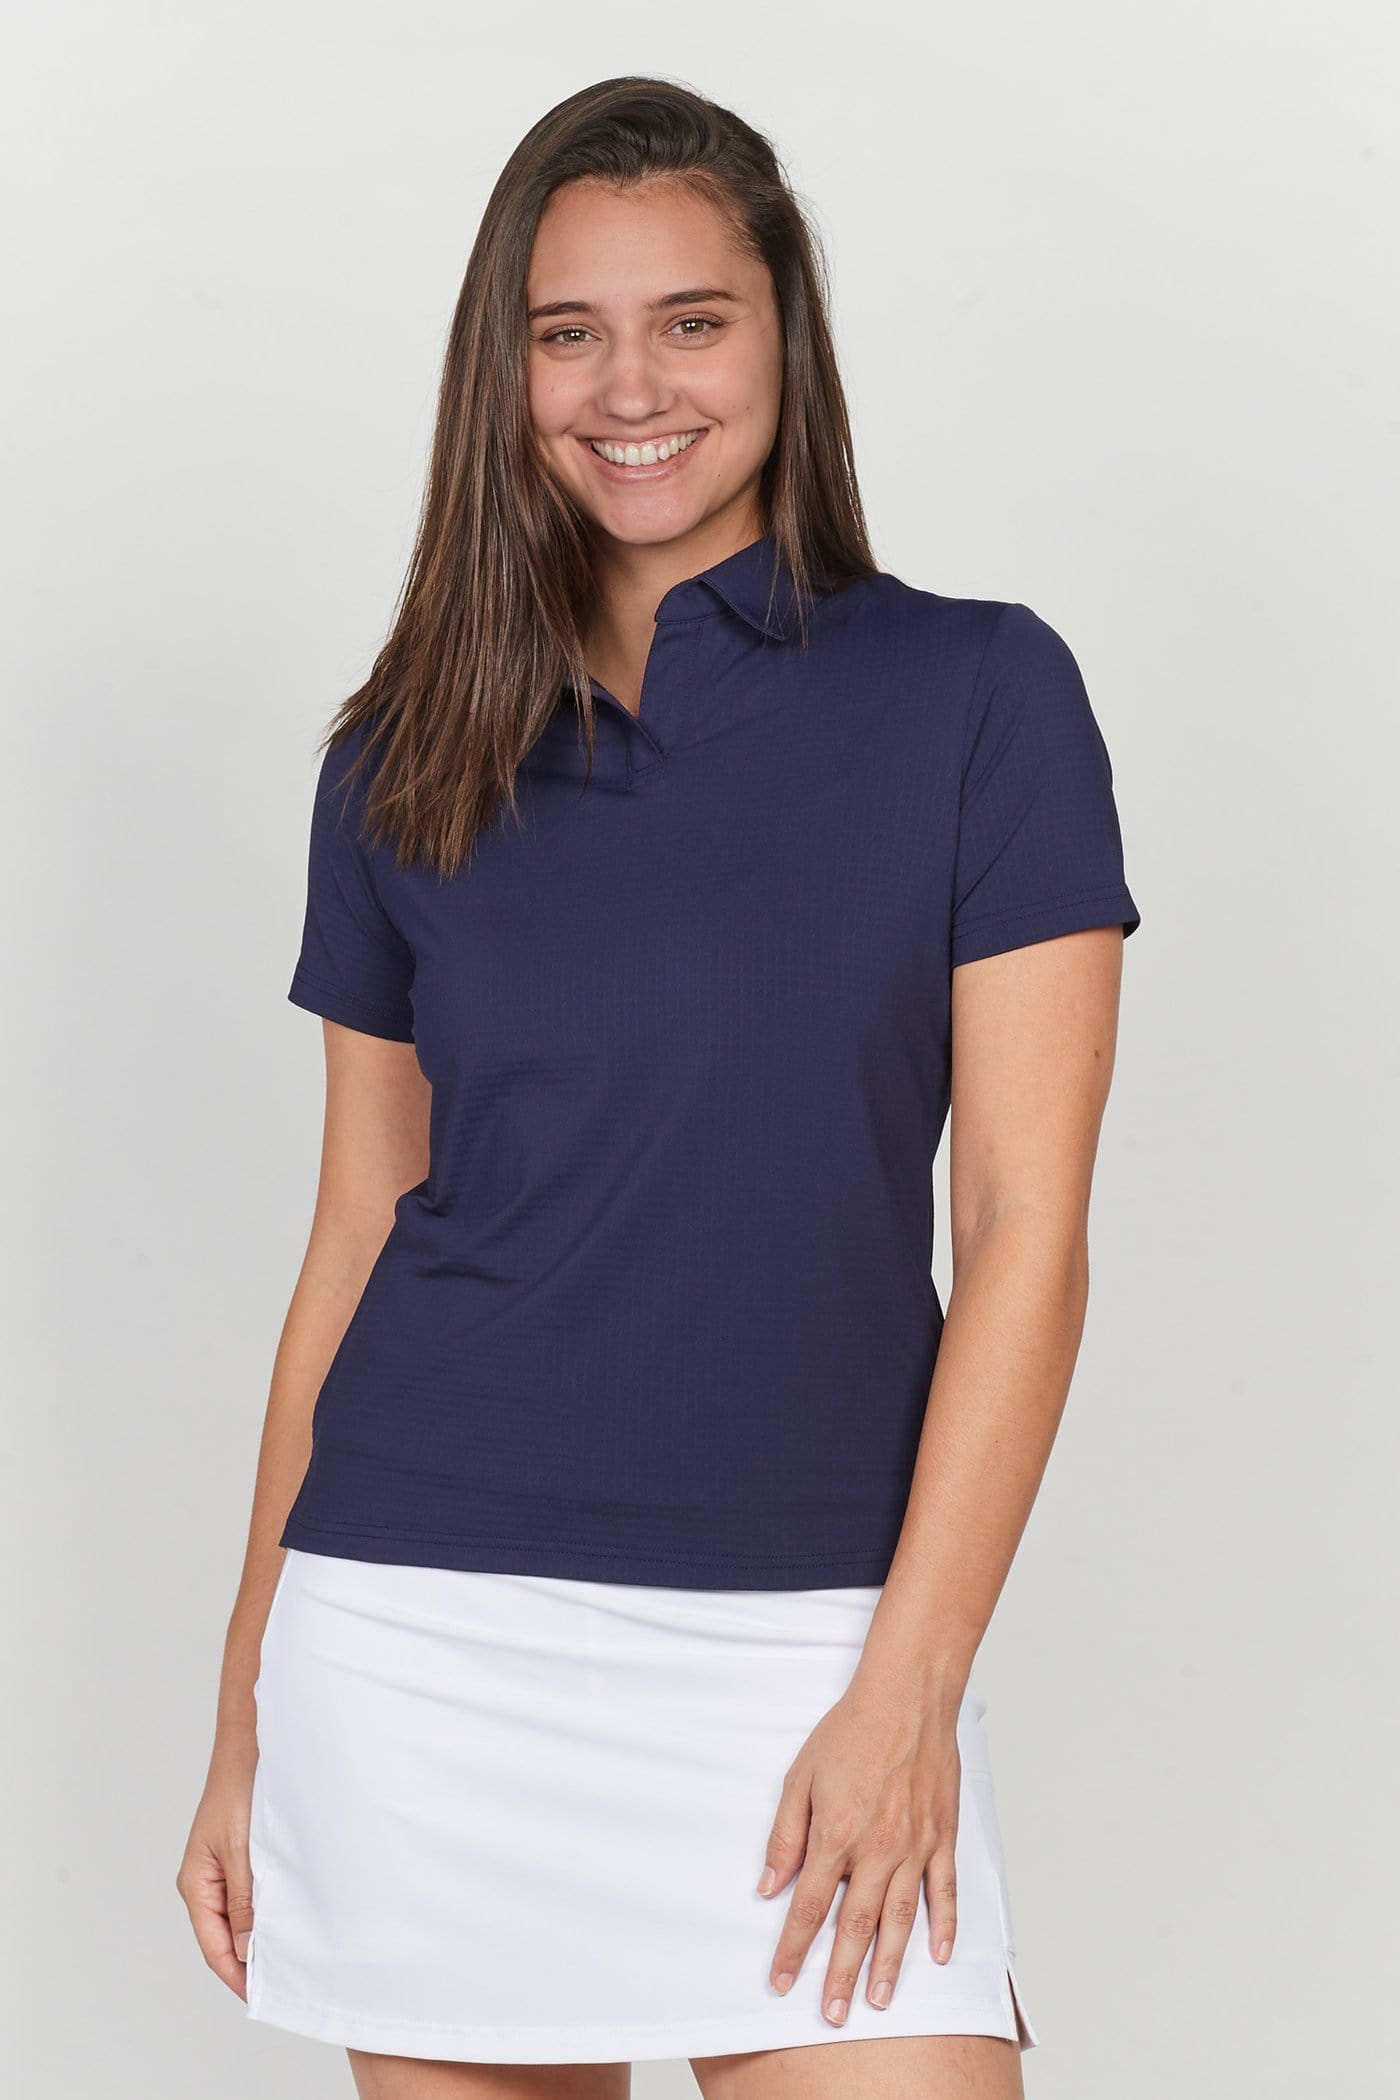 EIS Shirt EIS Jonny NAVY Cool Shirt equestrian team apparel online tack store mobile tack store custom farm apparel custom show stable clothing equestrian lifestyle horse show clothing riding clothes horses equestrian tack store